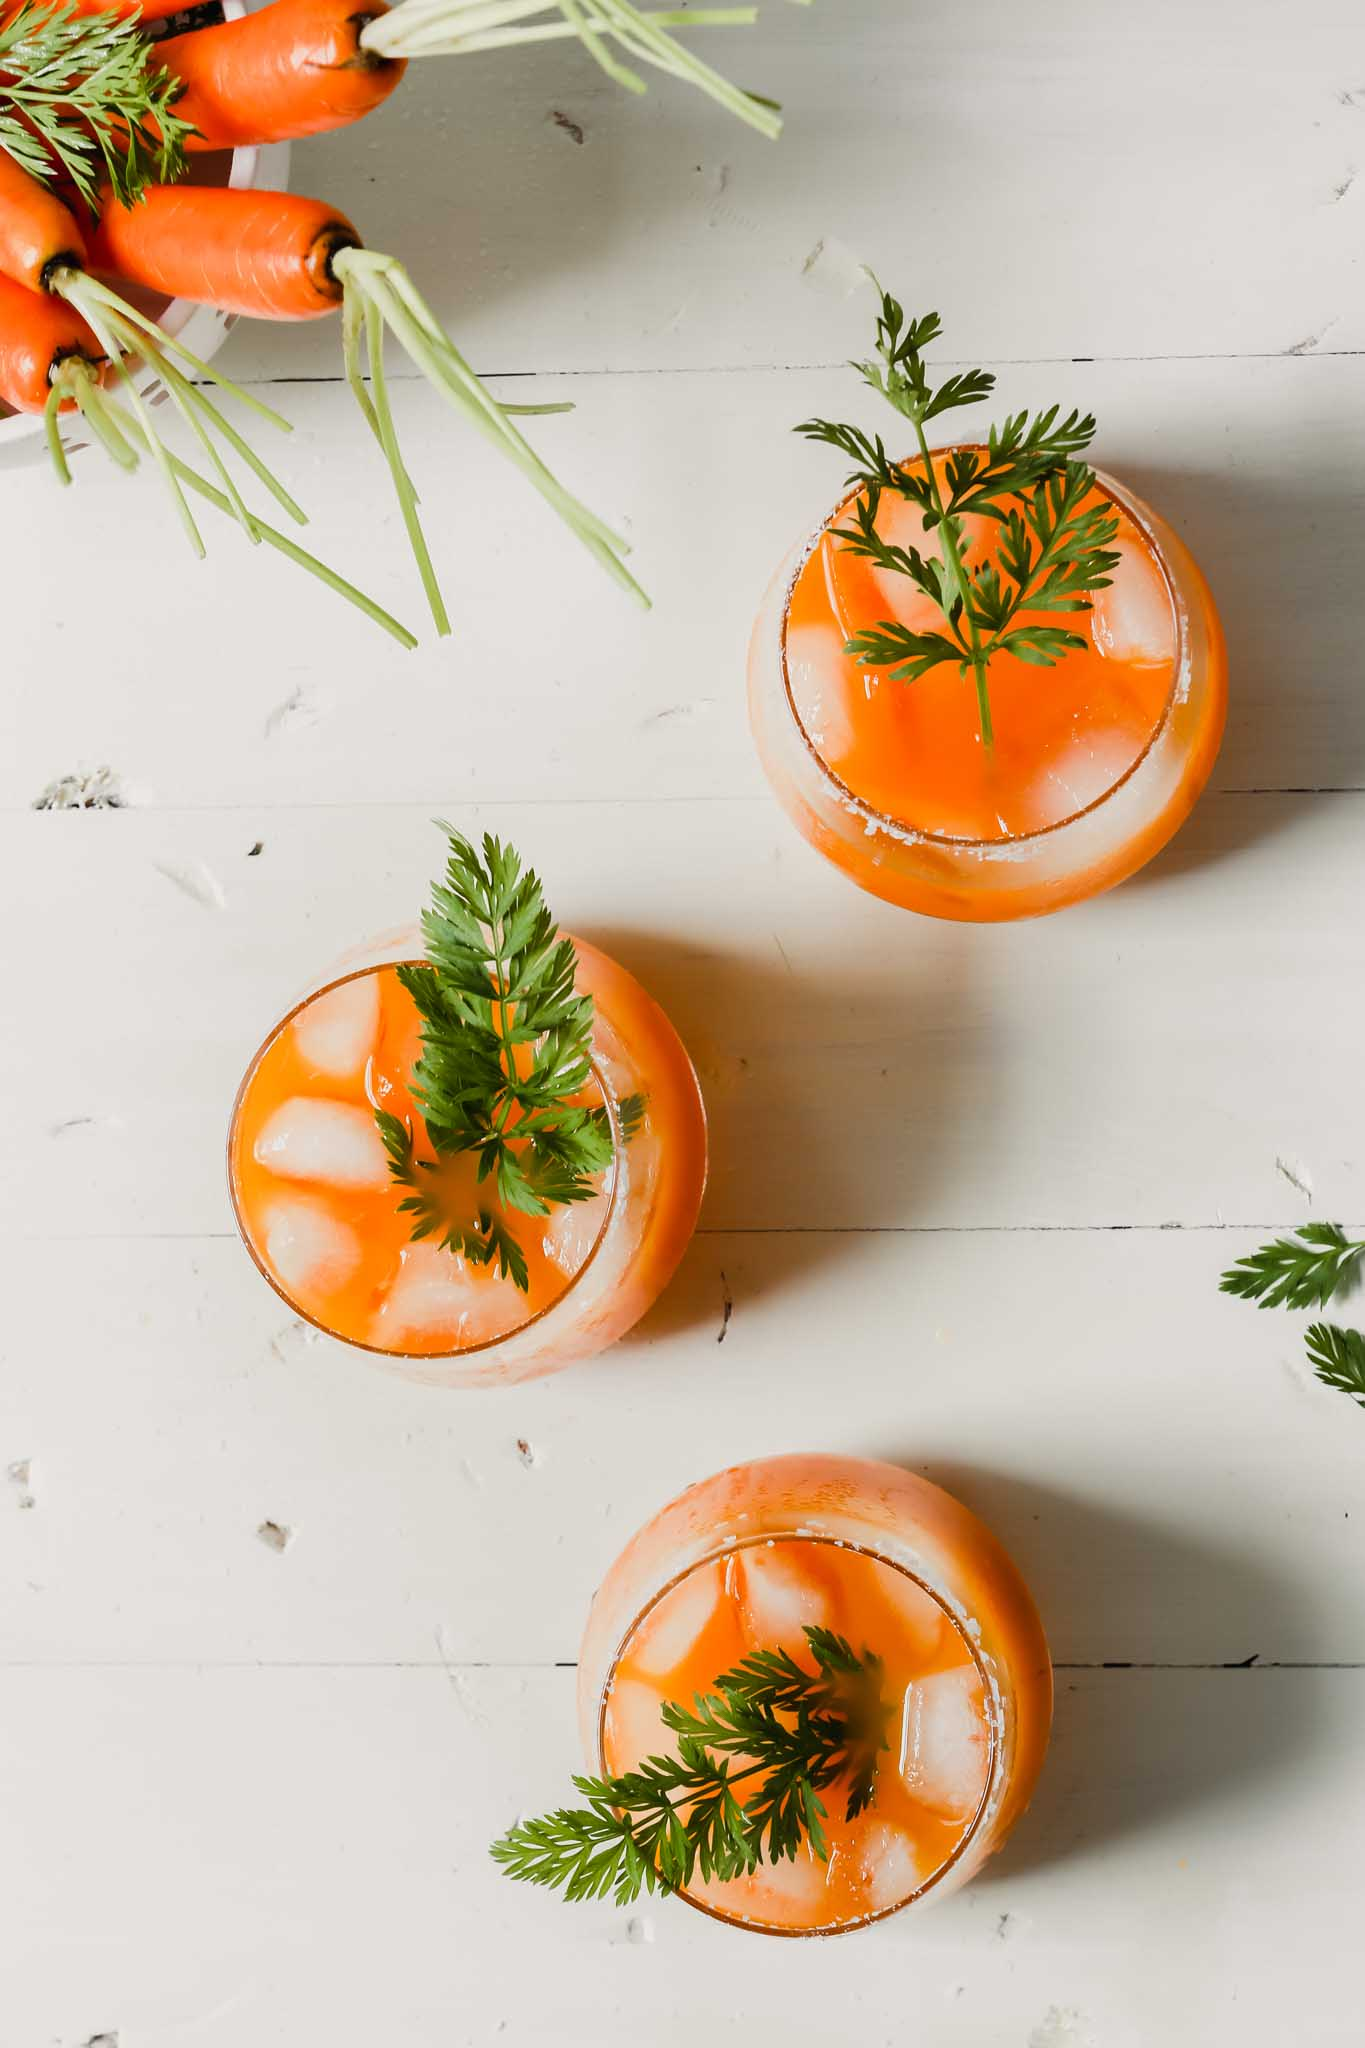 Overhead photograph of carrot cocktails with carrot tops as garnish set on a white wood table.